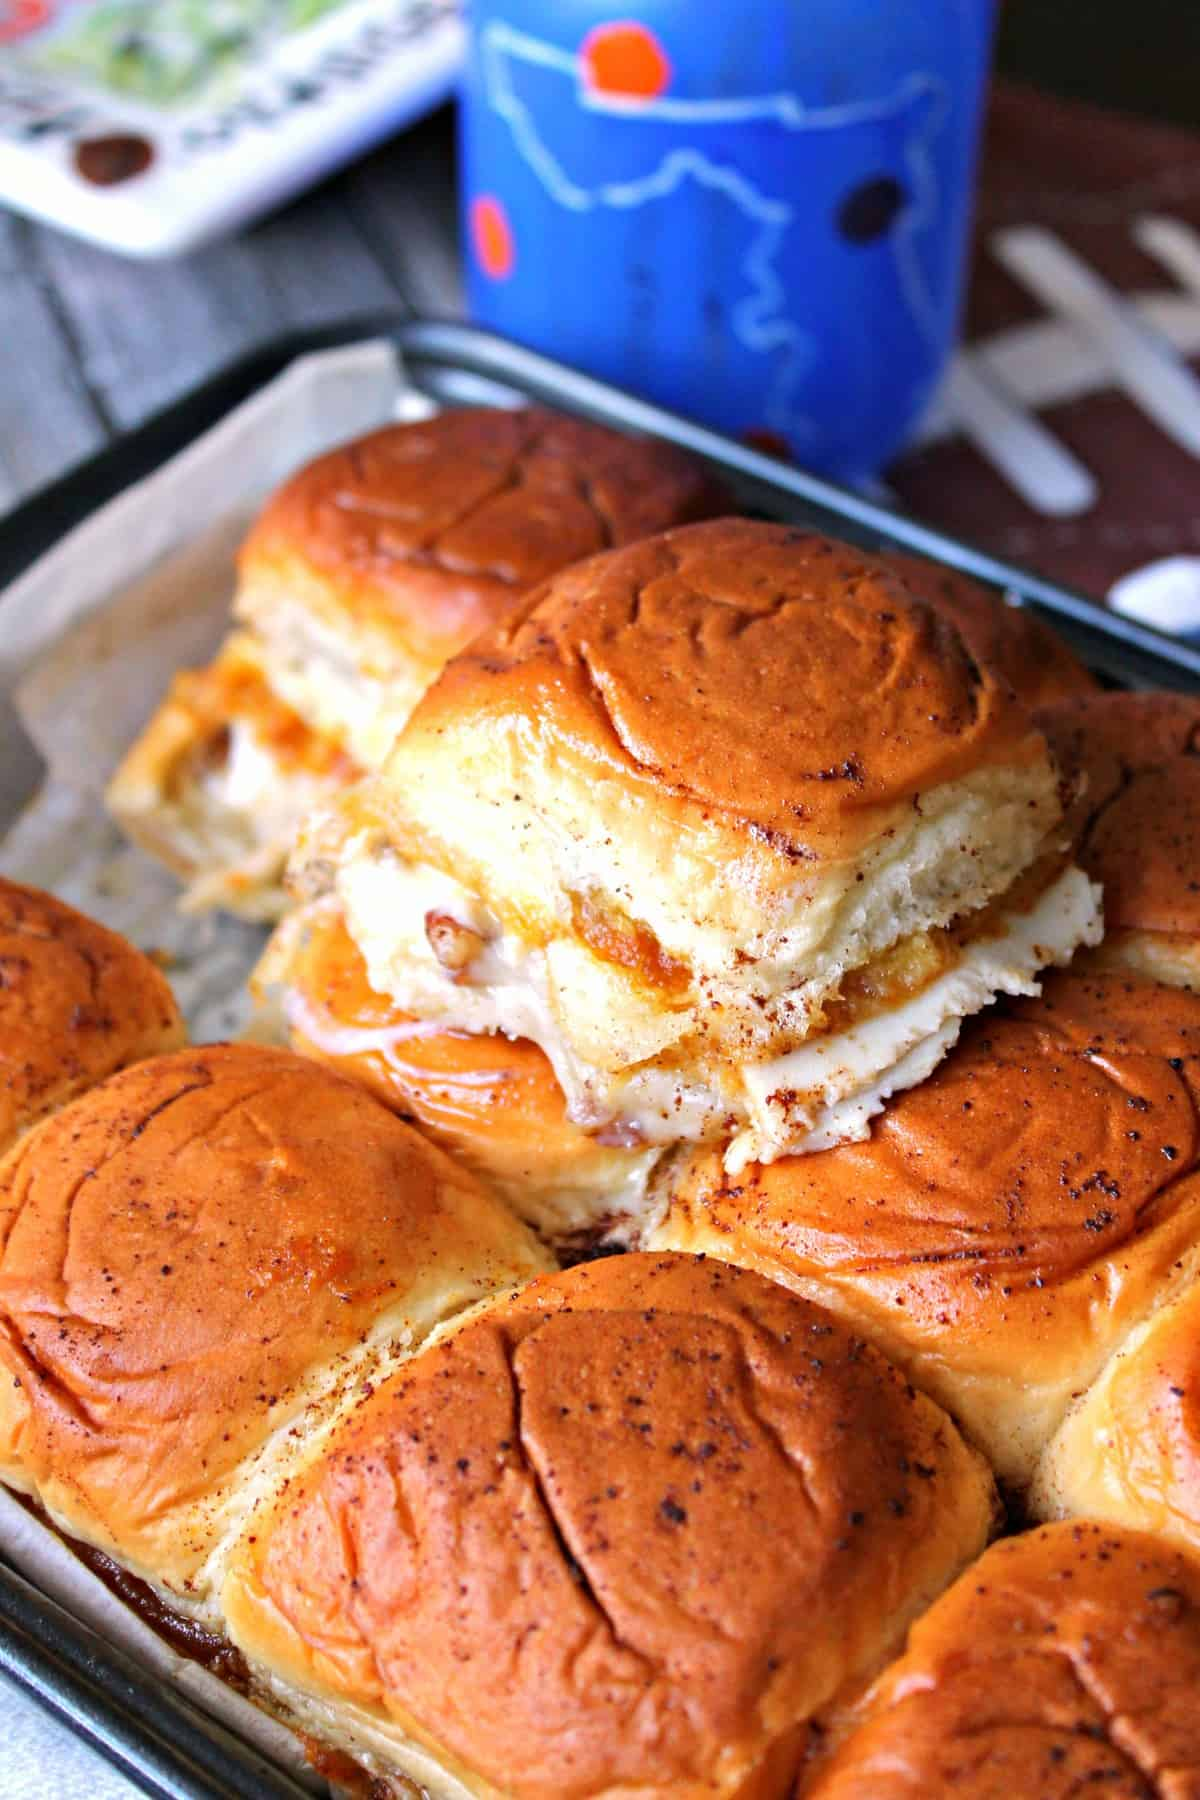 Baked Pumpkin Butter Turkey & Cheese Sliders. The ultimate bite of fall flavors: Pumpkin butter, turkey, pecans & melted cheese baked to buttery perfection!